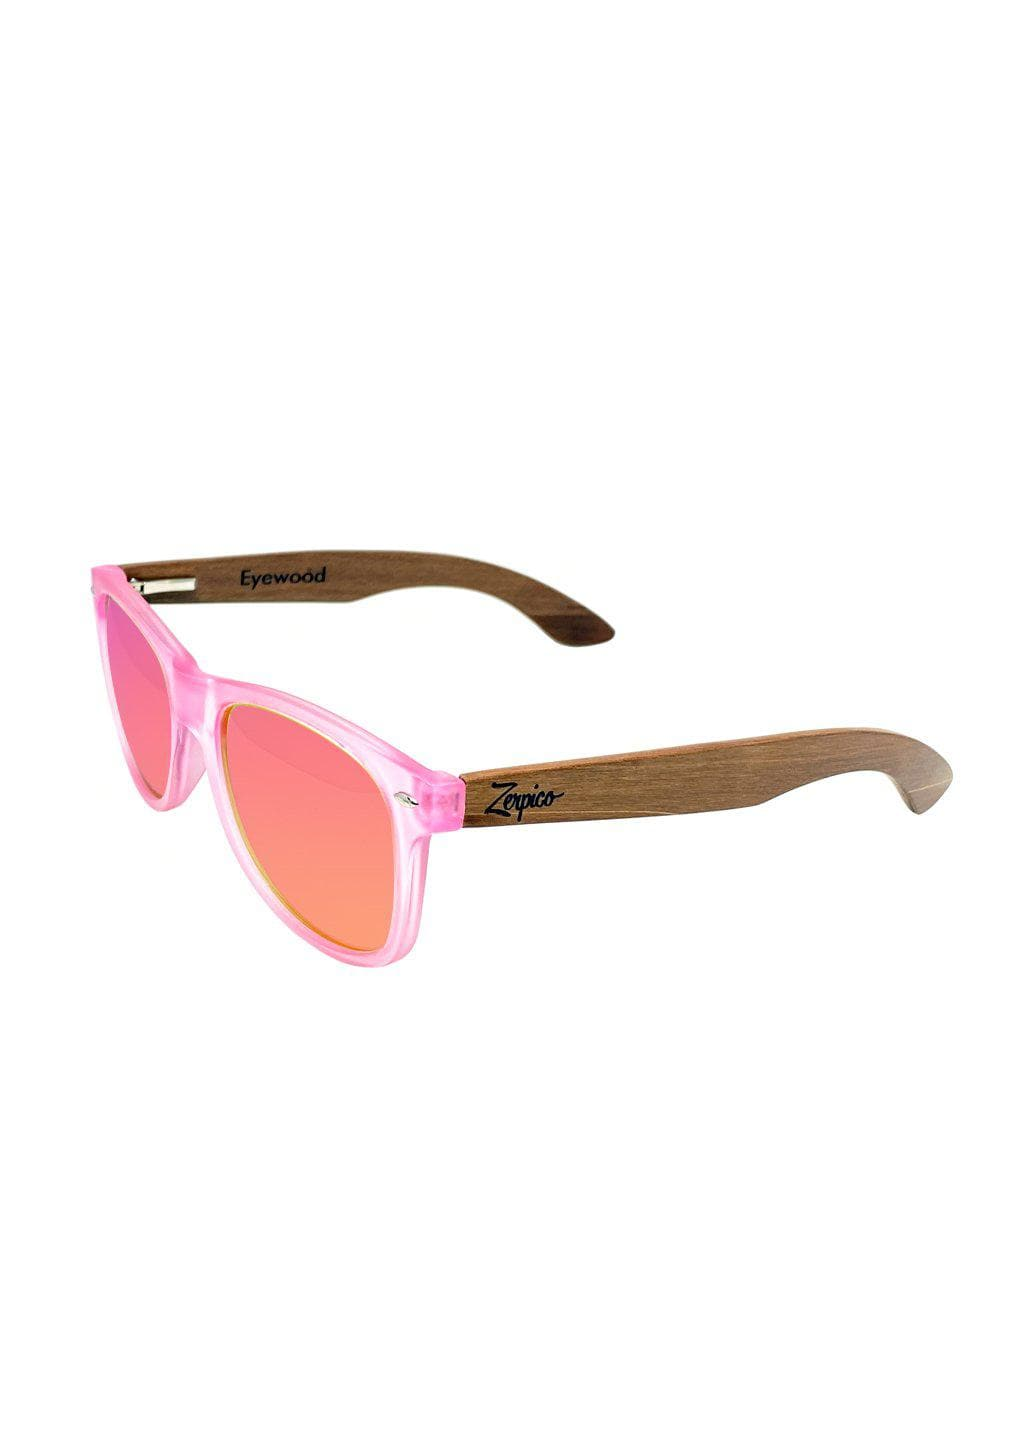 Eyewood Wayfarer - Coral - Nice wayfarers with pink frame and pink lenses. From the side.